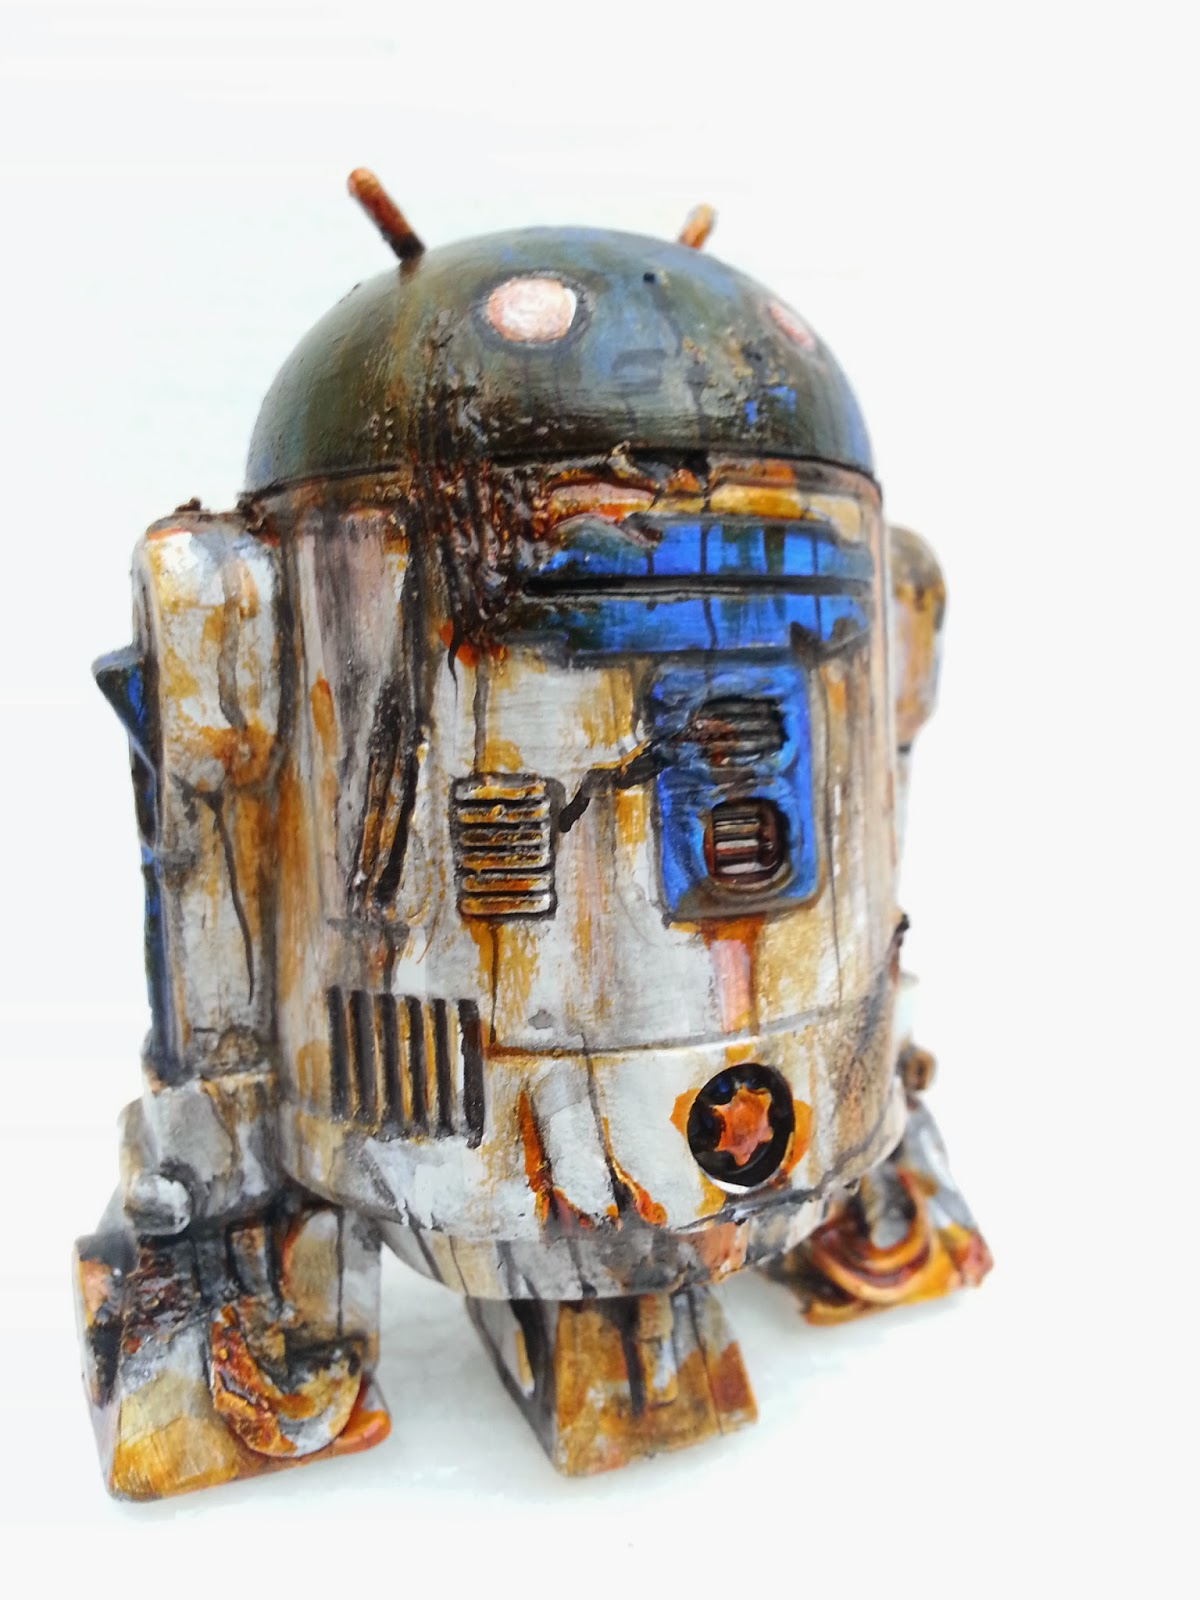 http://www.ebay.co.uk/itm/custom-android-star-wars-r2d2-vinyl-toy-battle-damaged-droid-3-5-inch-model-new-/151214509435?pt=UK_ToysGames_ActionFigures_ActionFigures_JN&hash=item2335164d7b